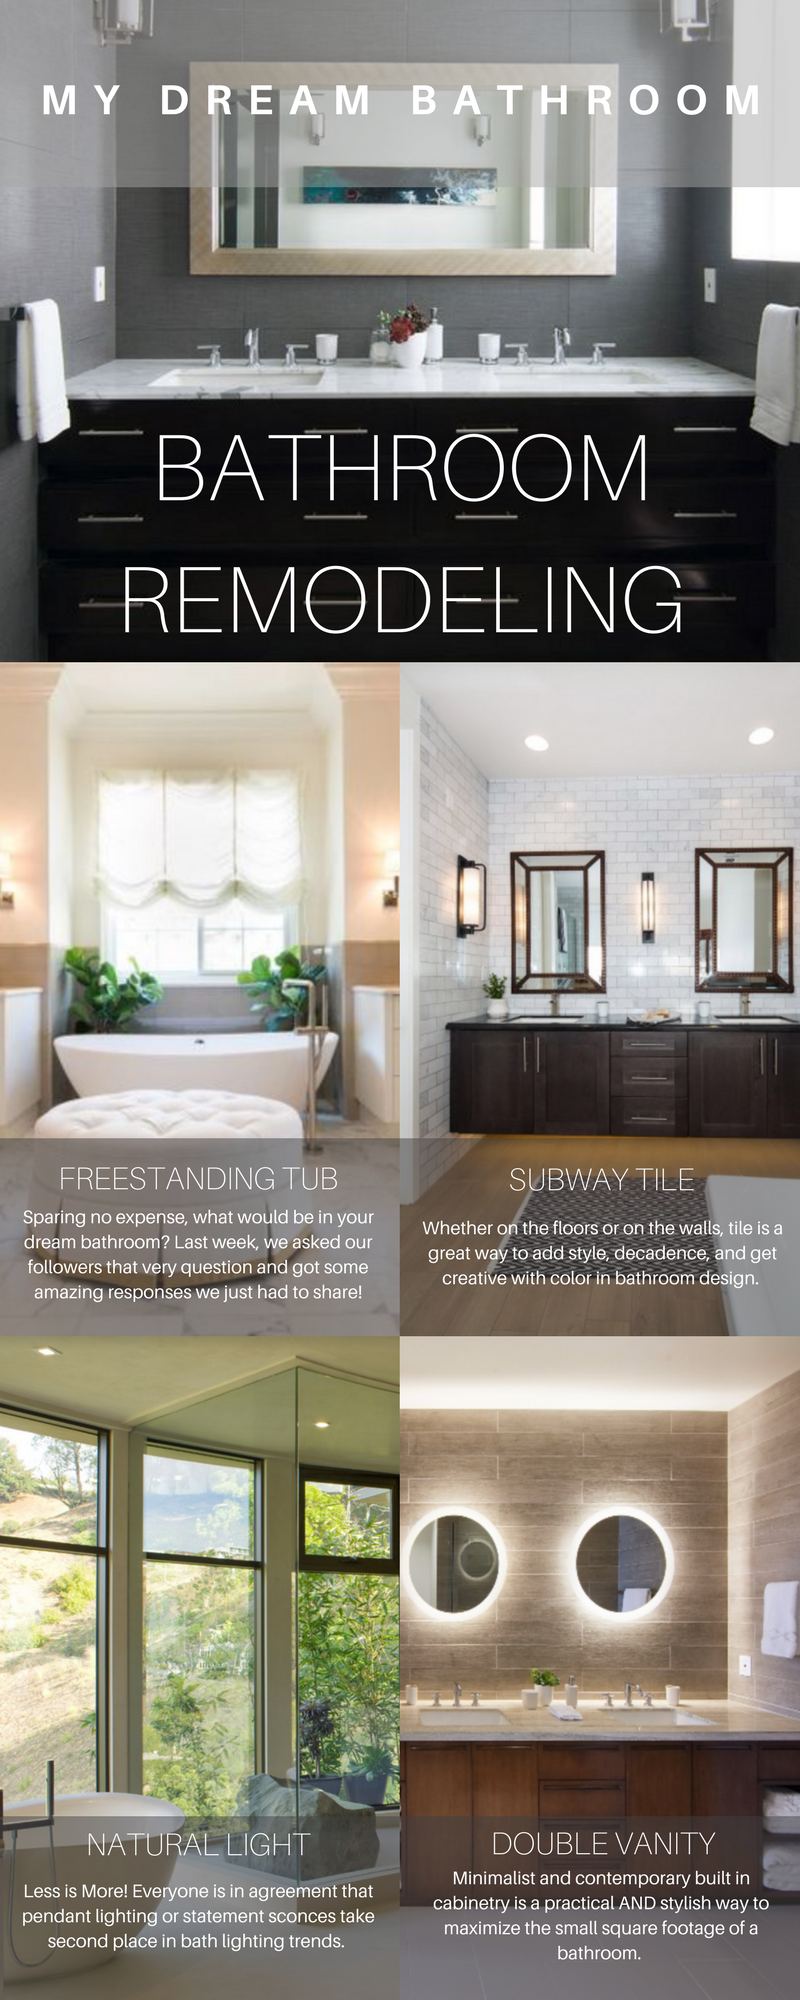 Sparing no expense, what would be in your dream bathroom? Last week, we asked our followers that very question and got some amazing responses we just had to share! Read on for the top amenities our followers want in their dream bathroom makeover